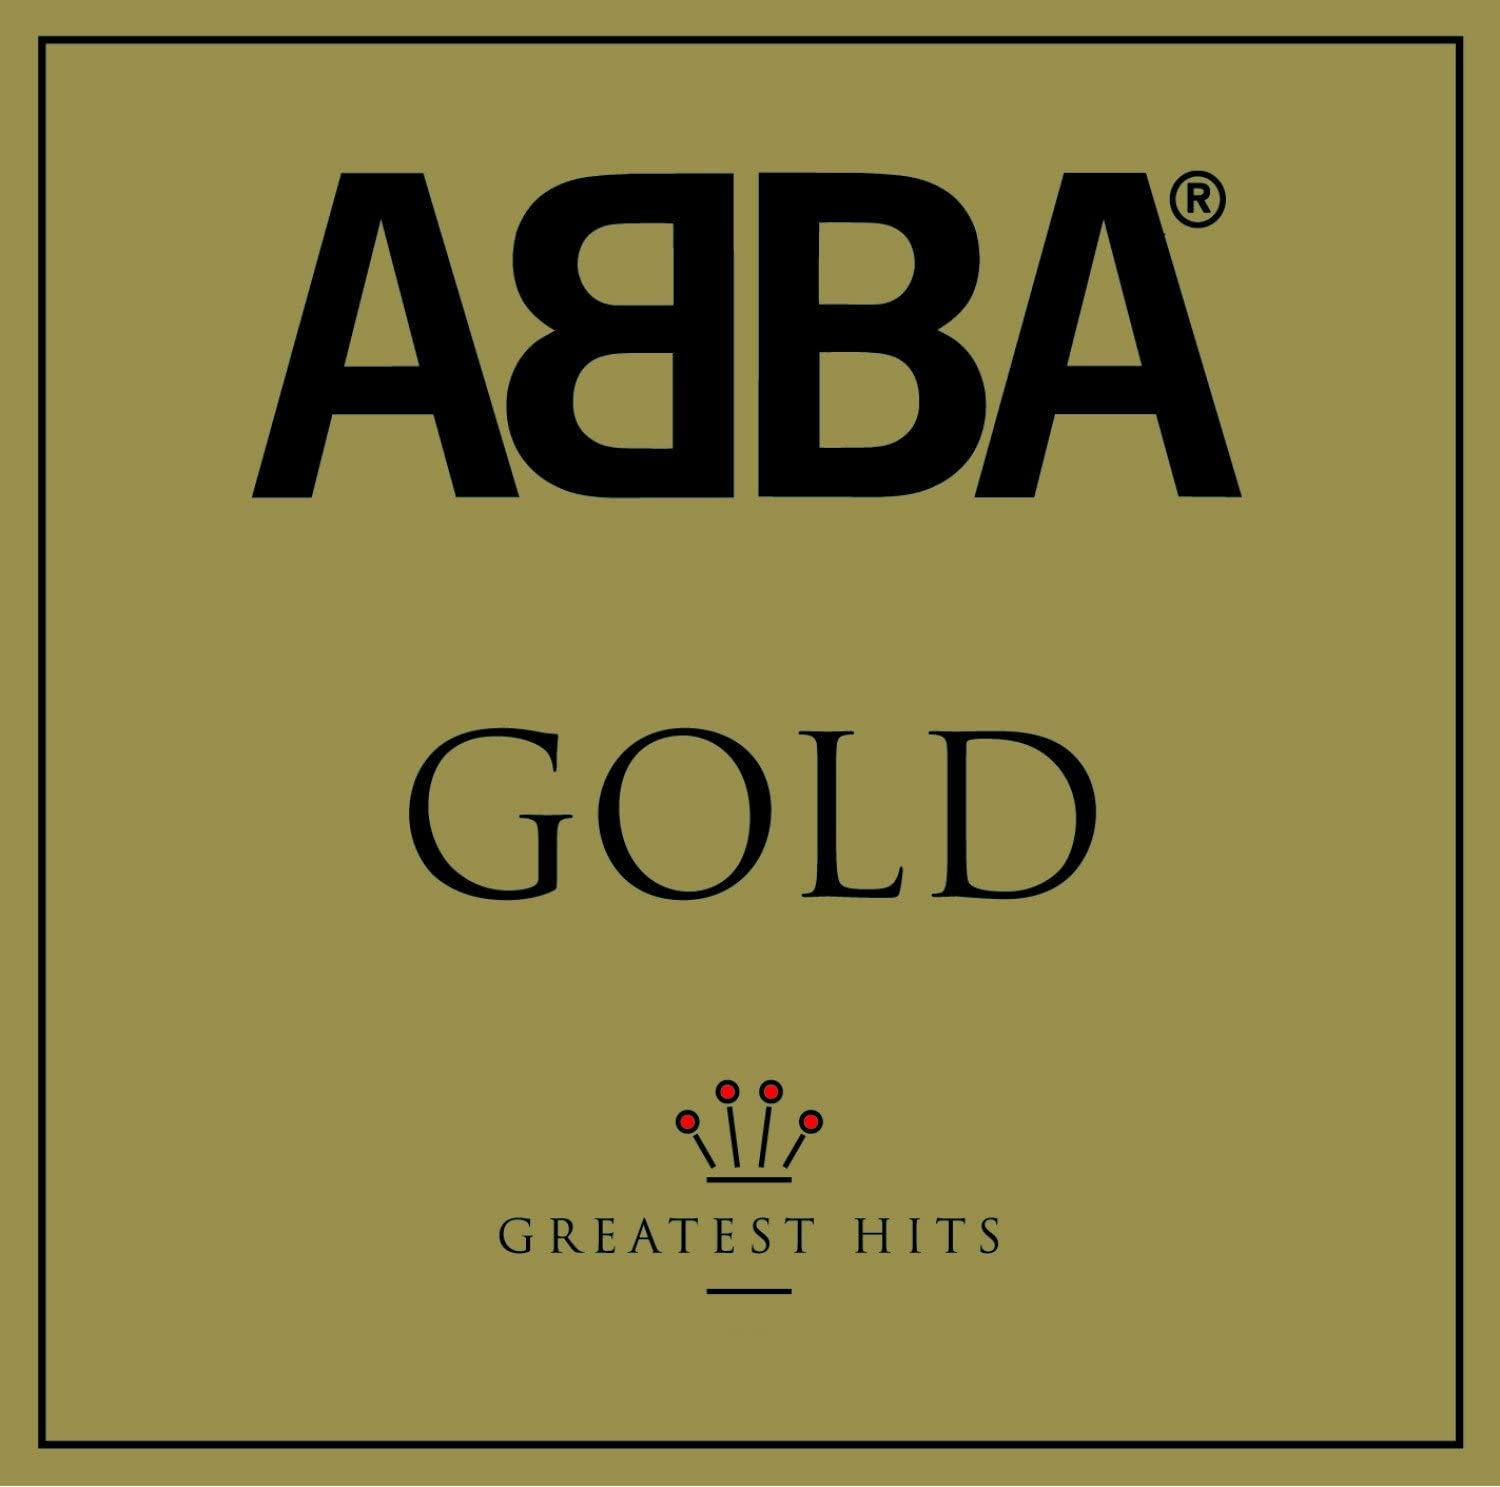 gold 40 Things You Probably Didn't Know About ABBA